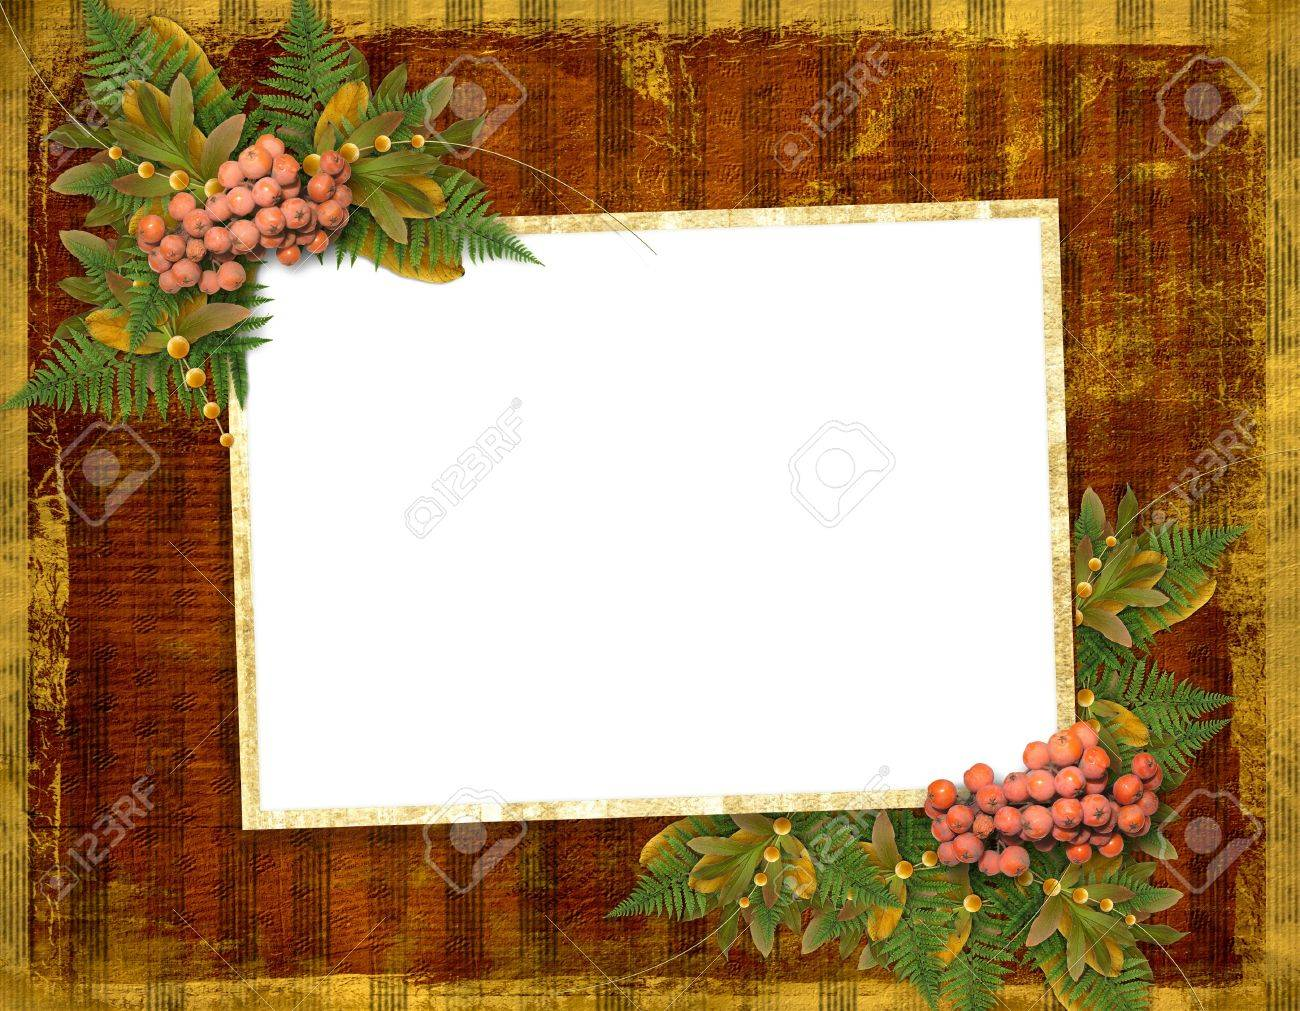 Old grunge card on the abstract background with autumn leaves Stock Photo - 5500943